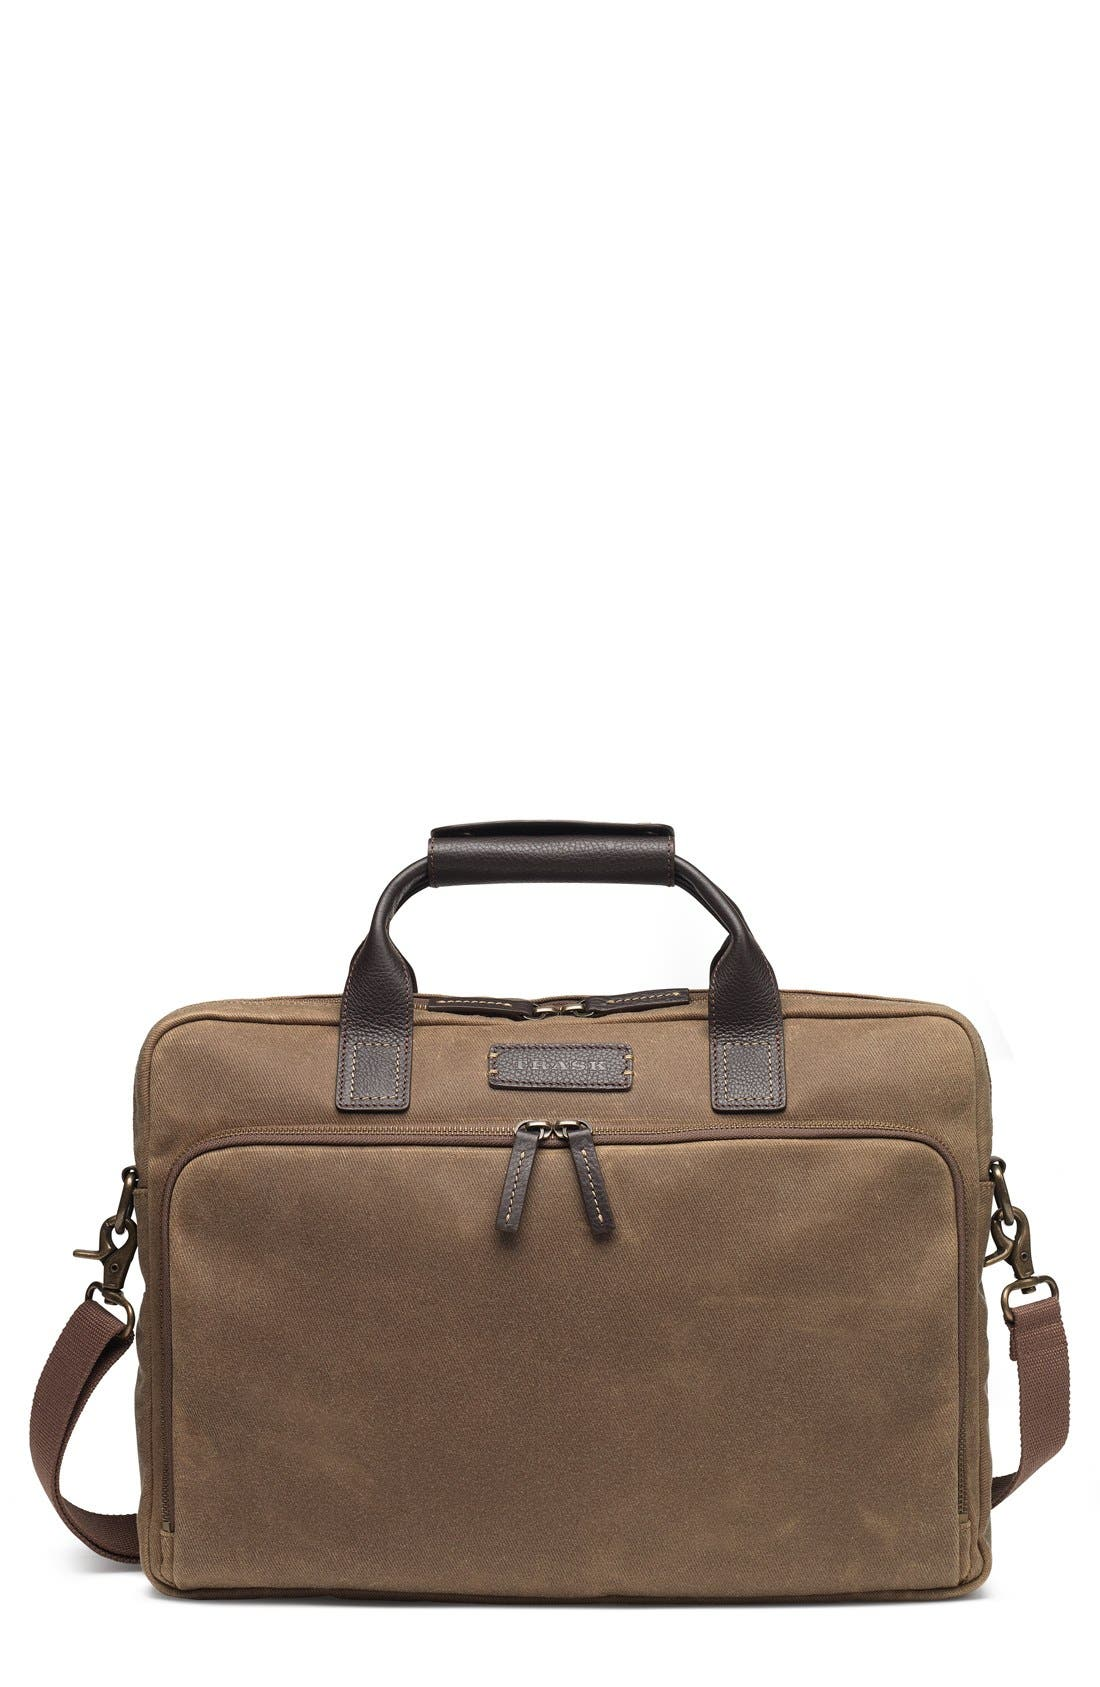 Trask 'Bridger Trail' Waxed Canvas Tote